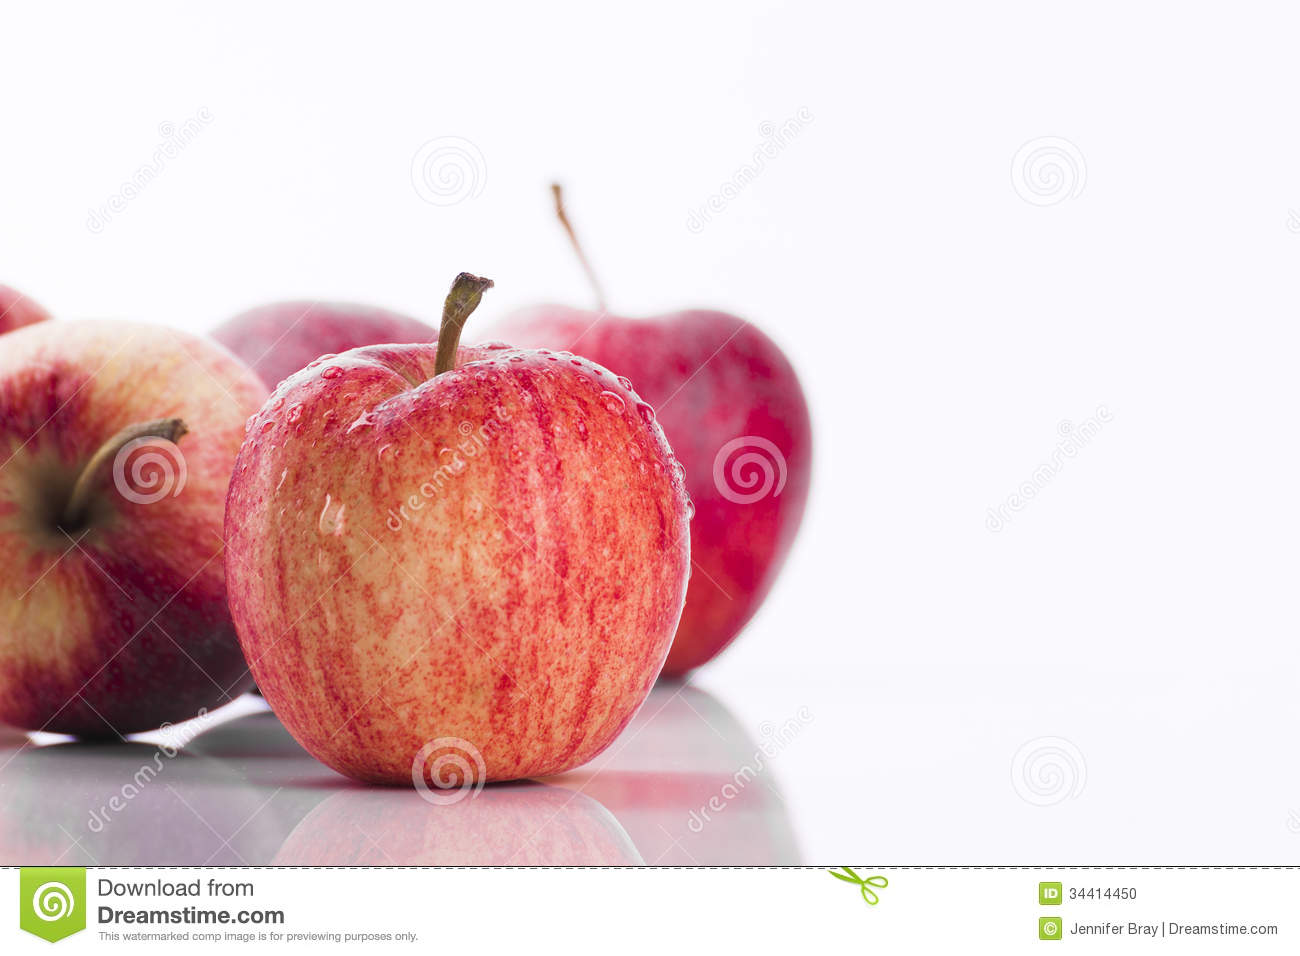 juicy red apples white background promoting healthy eating lifestyle choices 34414450